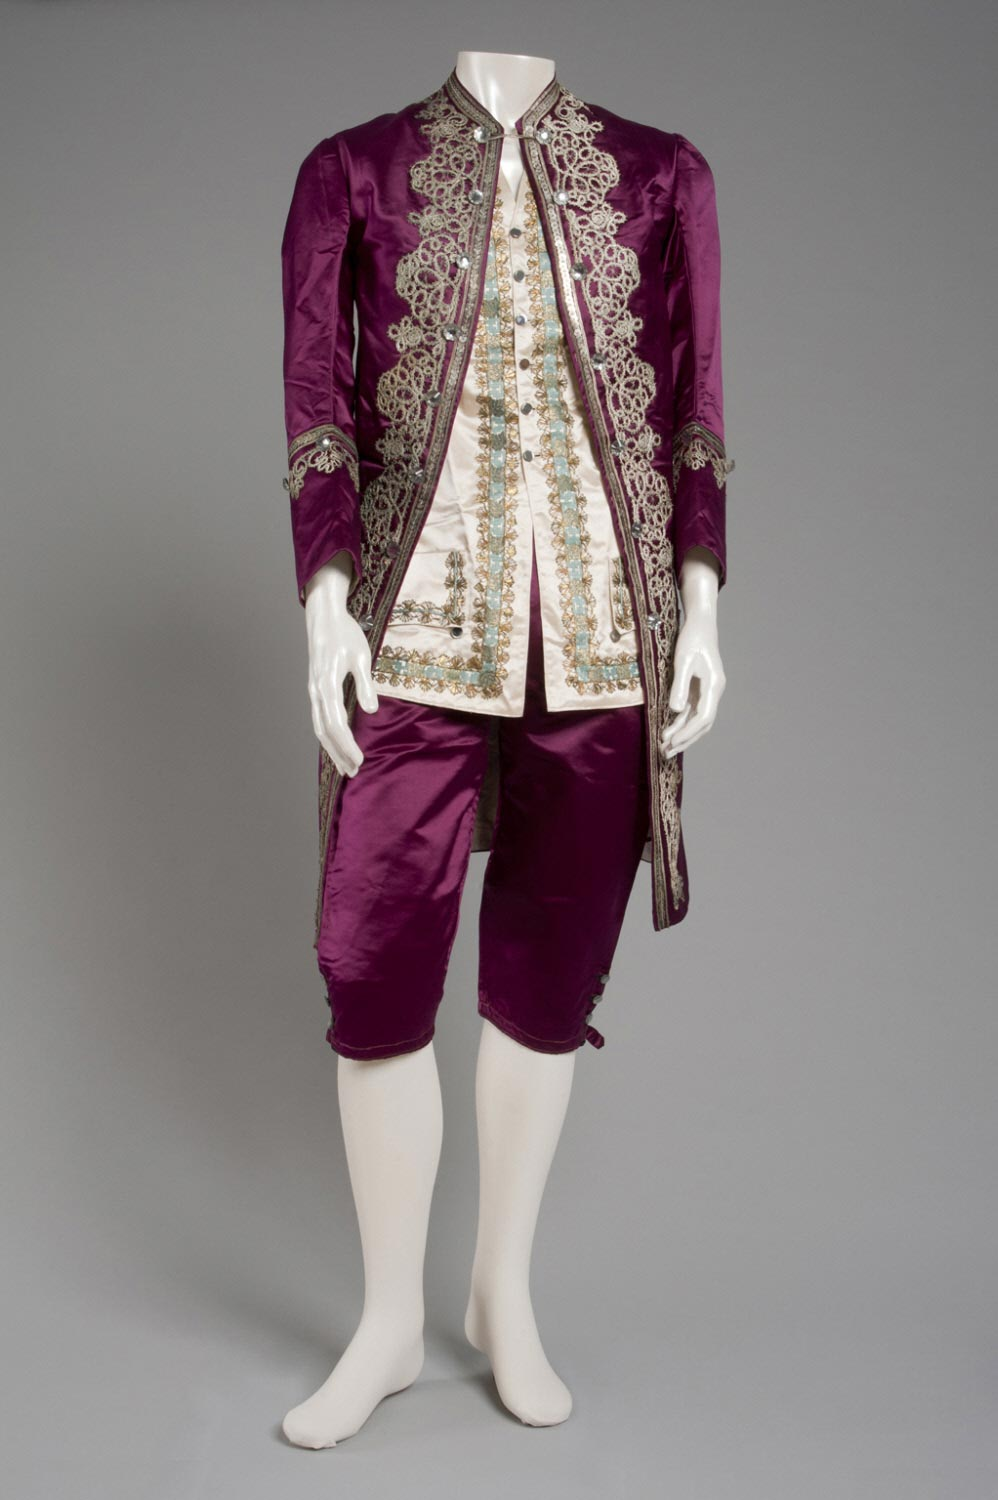 Man's Fancy Dress Ensemble in Eighteenth-Century Style: Coat, Breeches, and Waistcoat